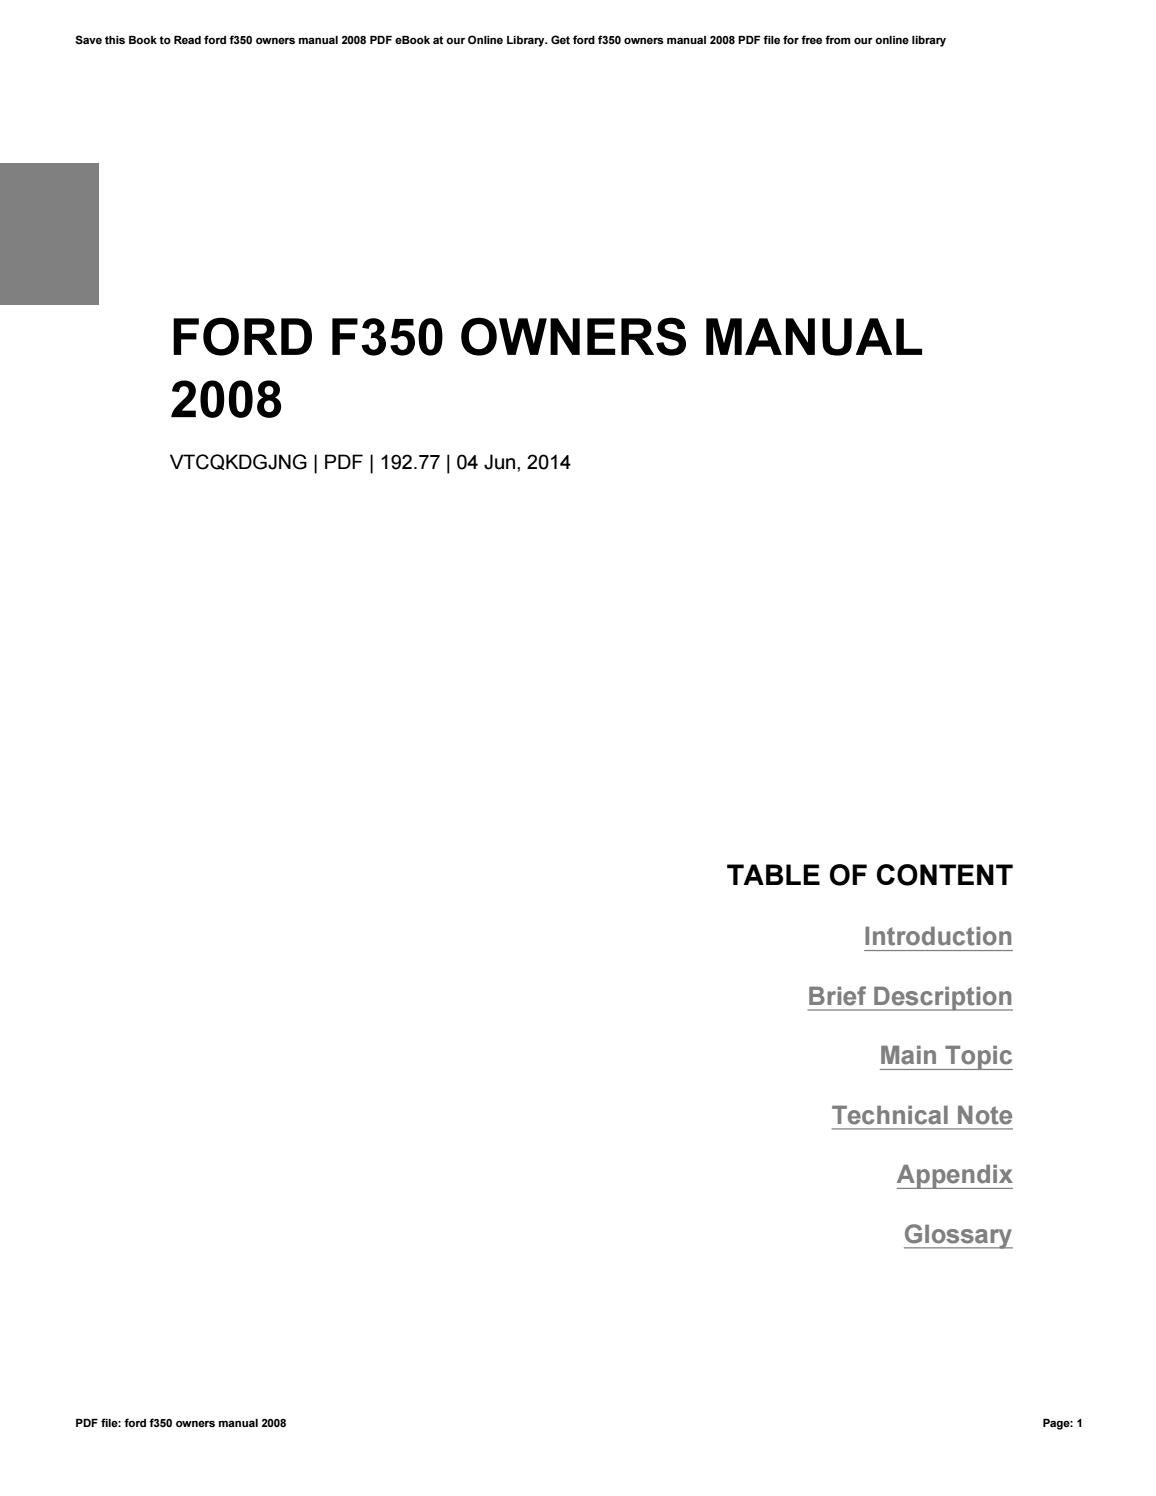 hight resolution of 2008 ford f350 owner manual